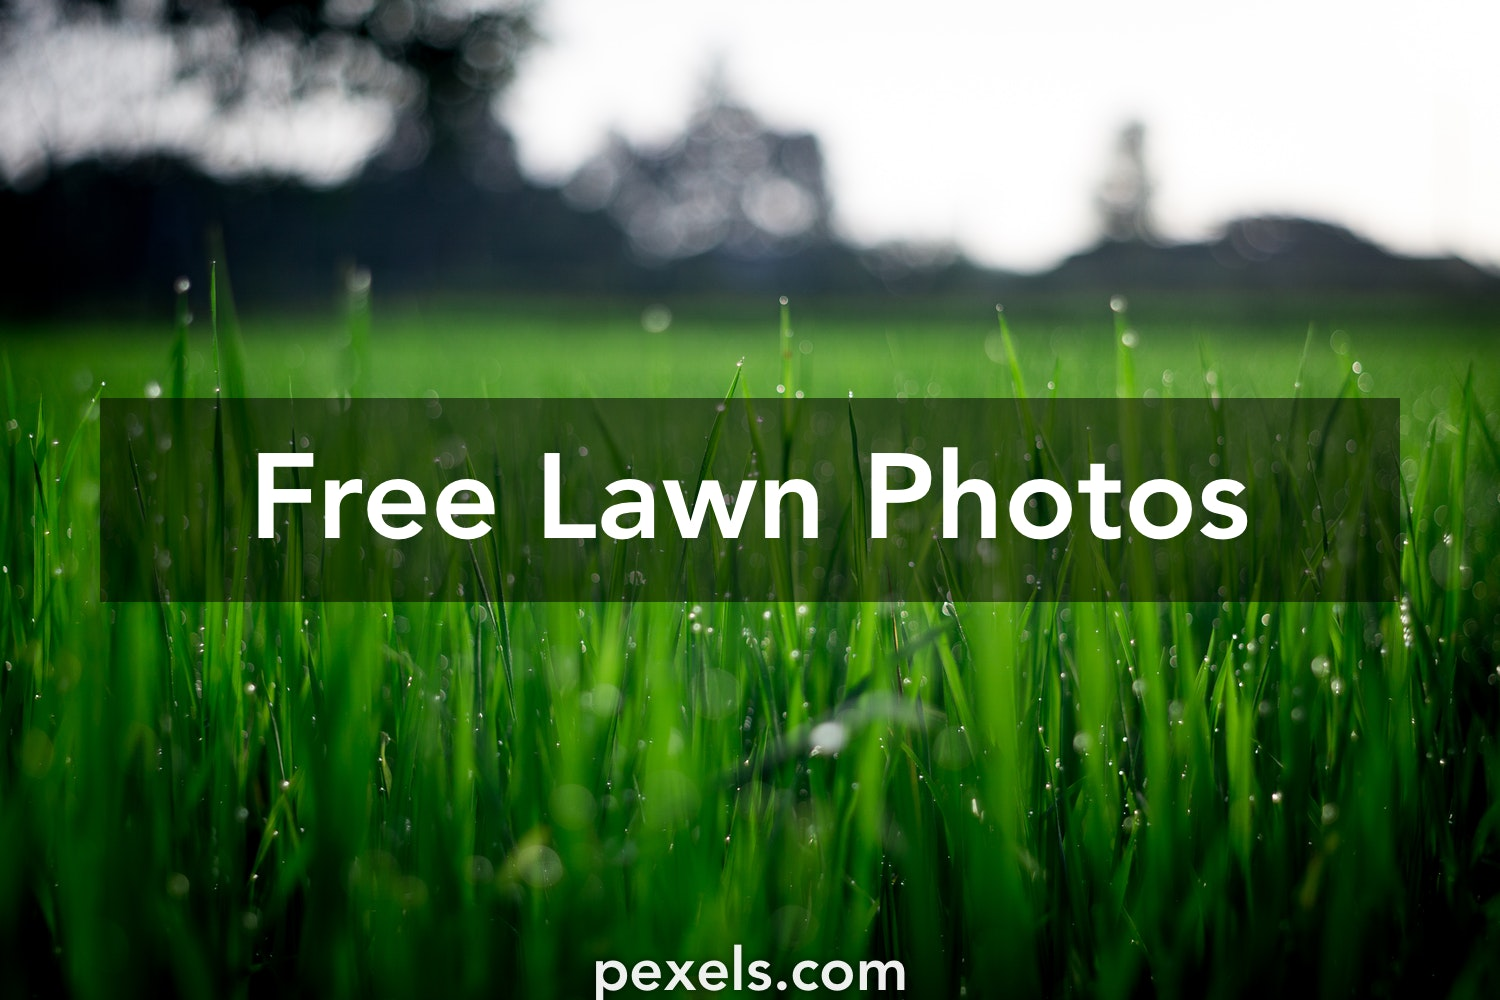 City Pictures Pexels Free Stock Photos: Free Stock Photos Of Lawn · Pexels